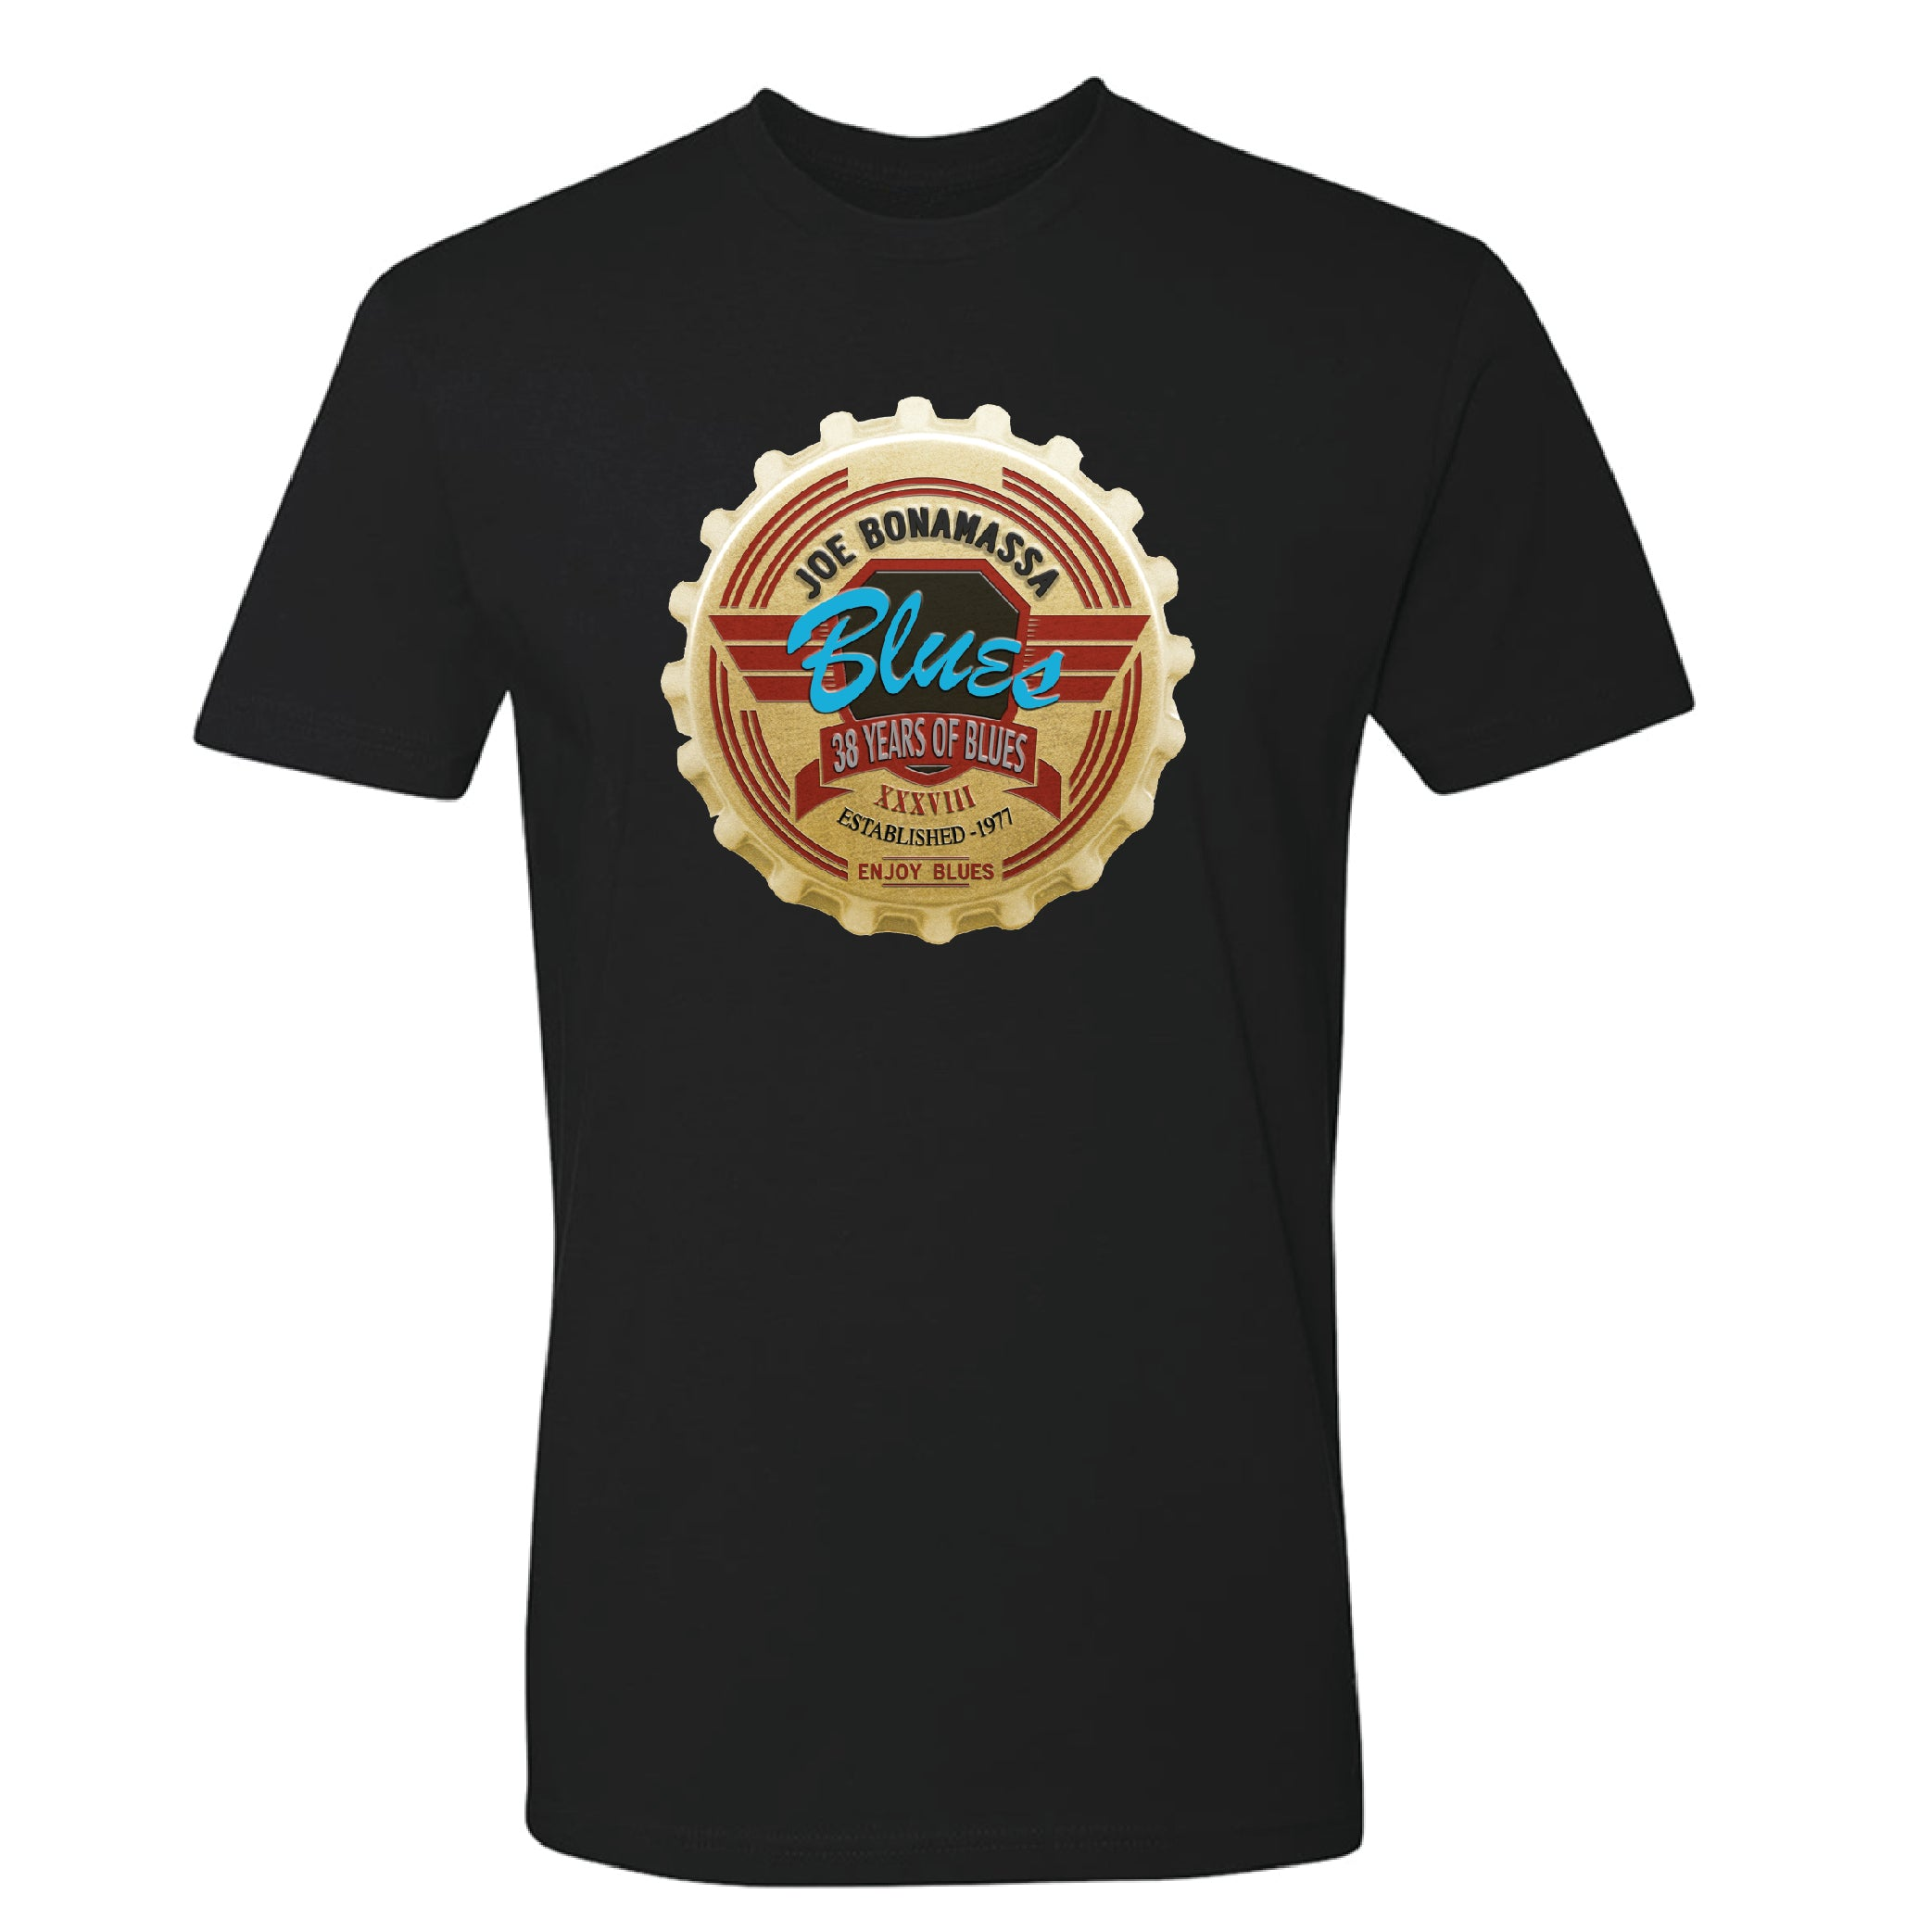 Joe Bonamassa 38 Years of Blues T-Shirt (Unisex)